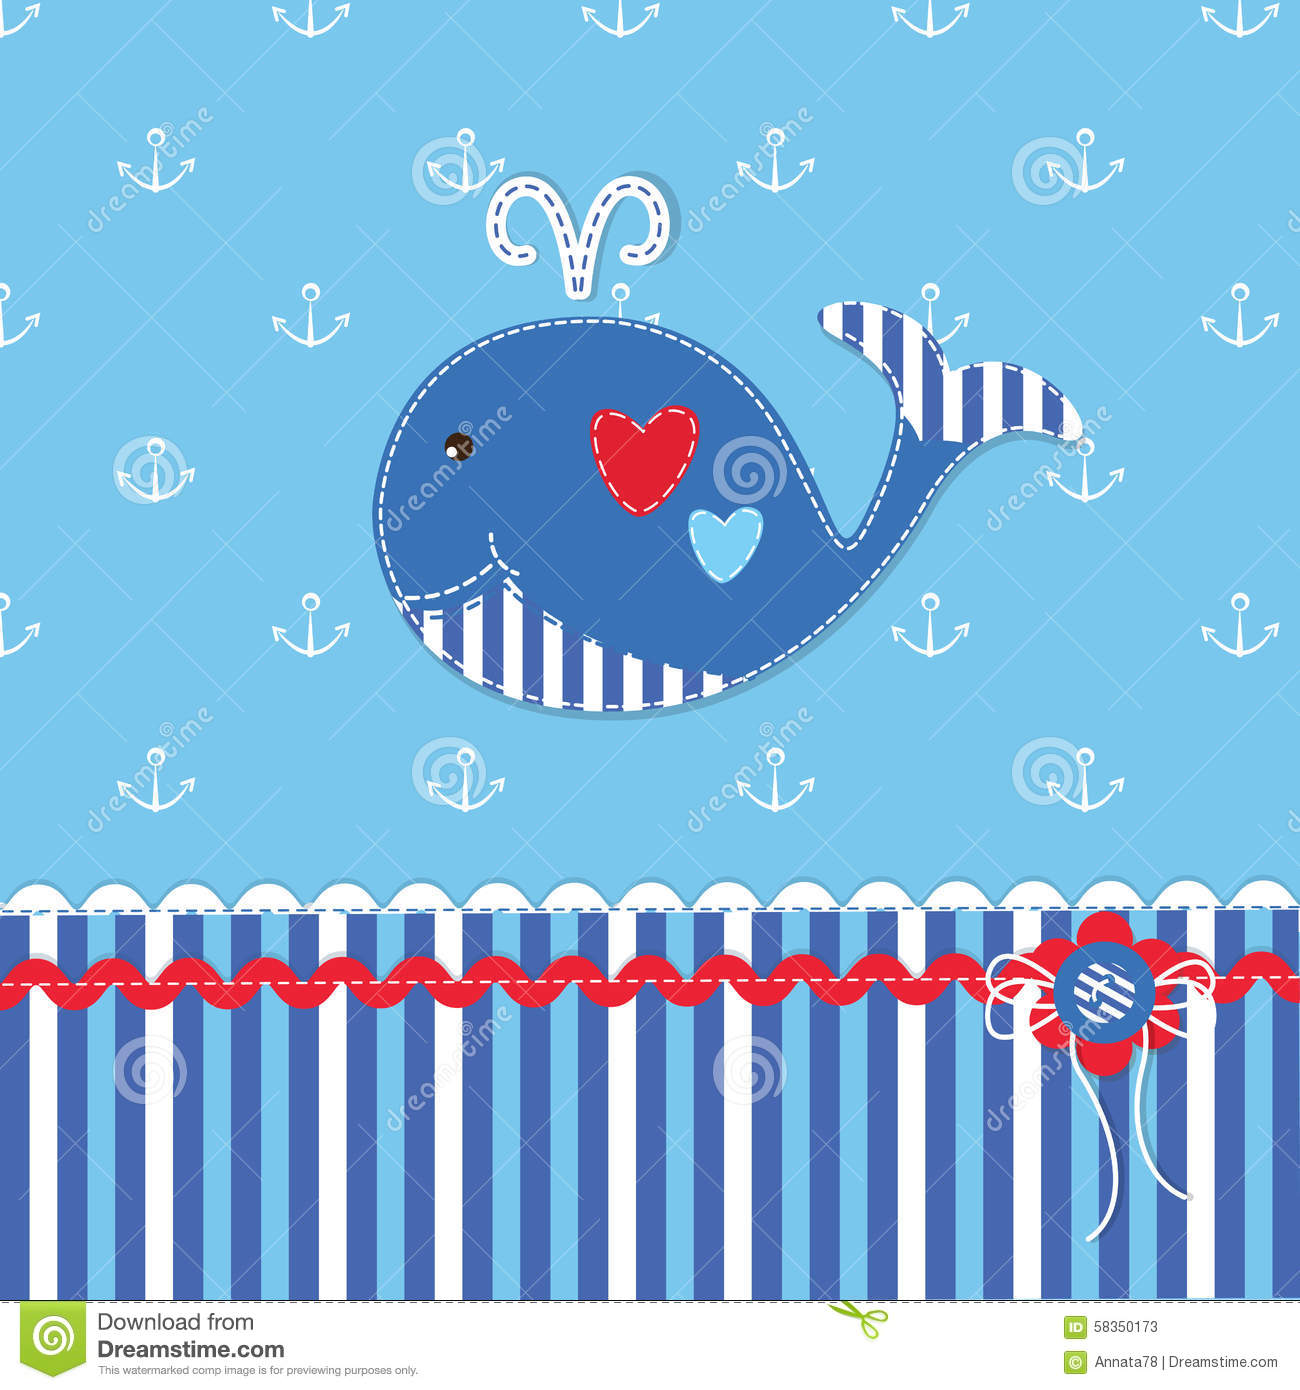 Baby Shower With Cute Whale Stock Vector - Illustration of ...